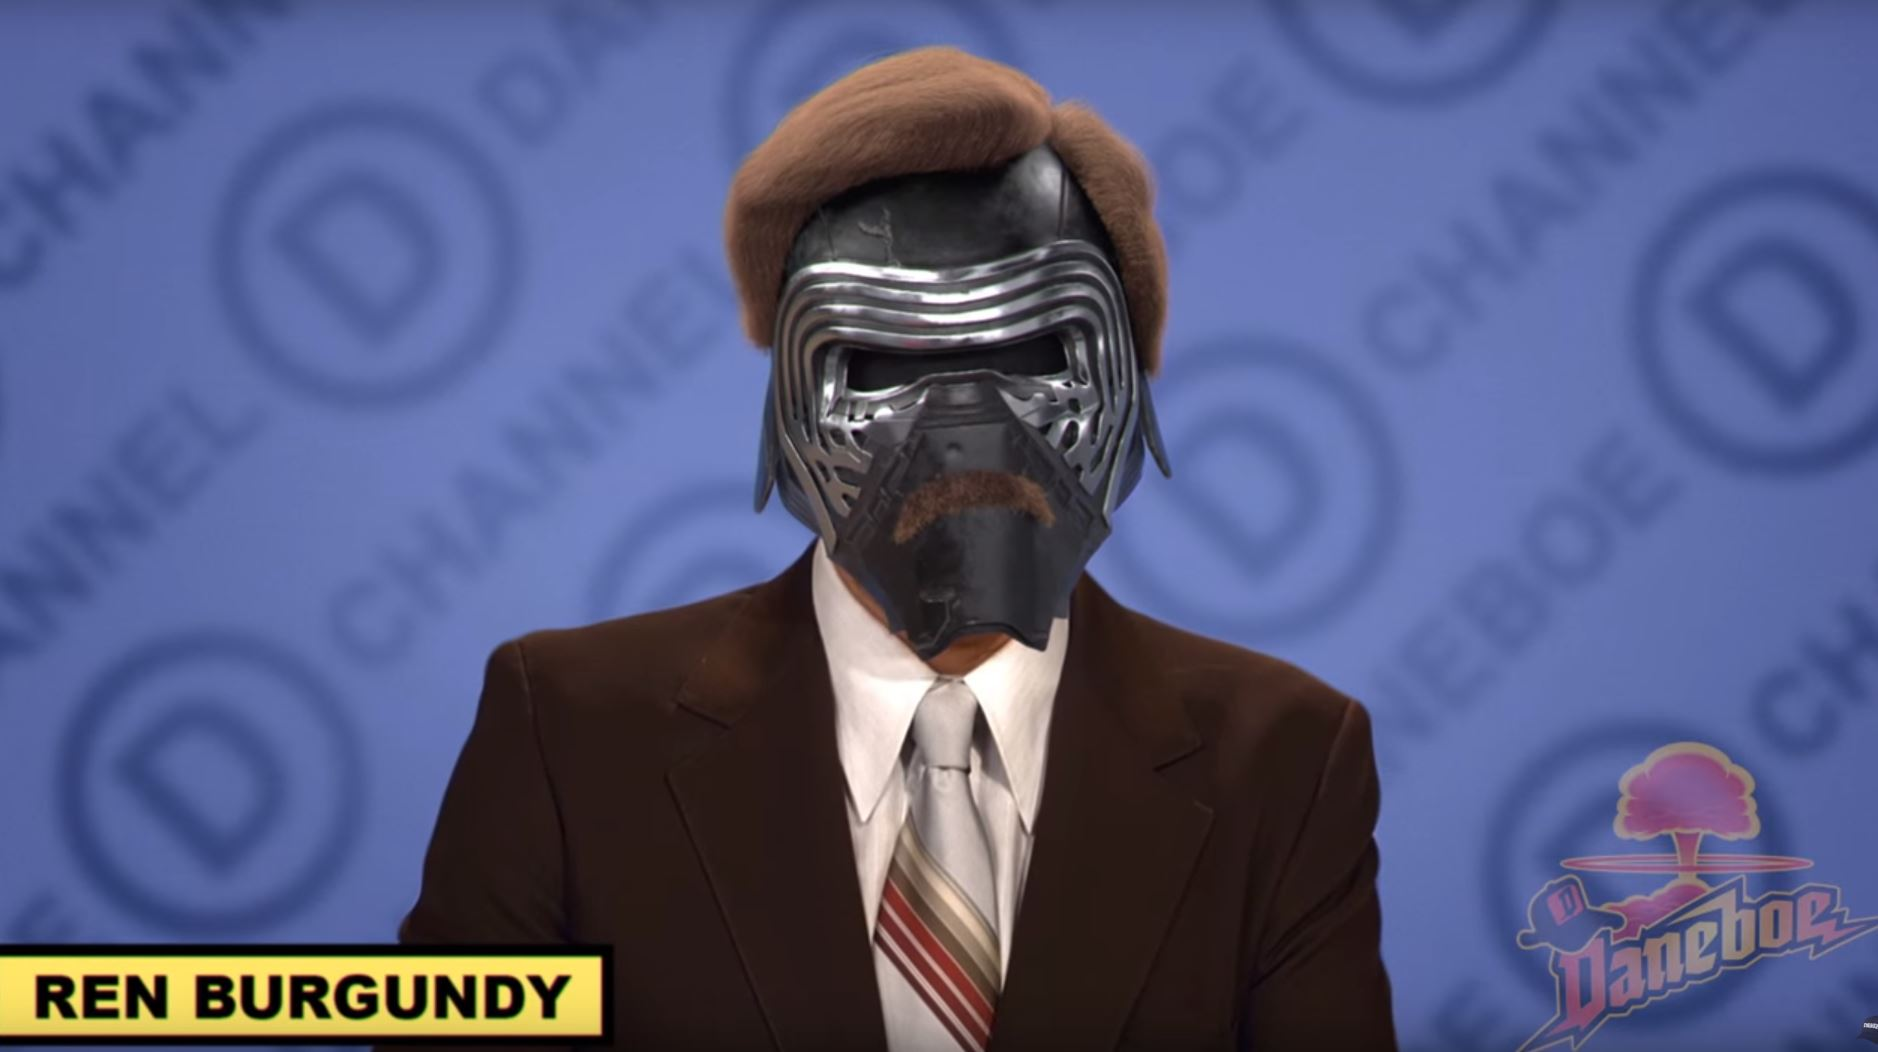 Kylo Ren has been edited into some of Hollywood's most iconic films